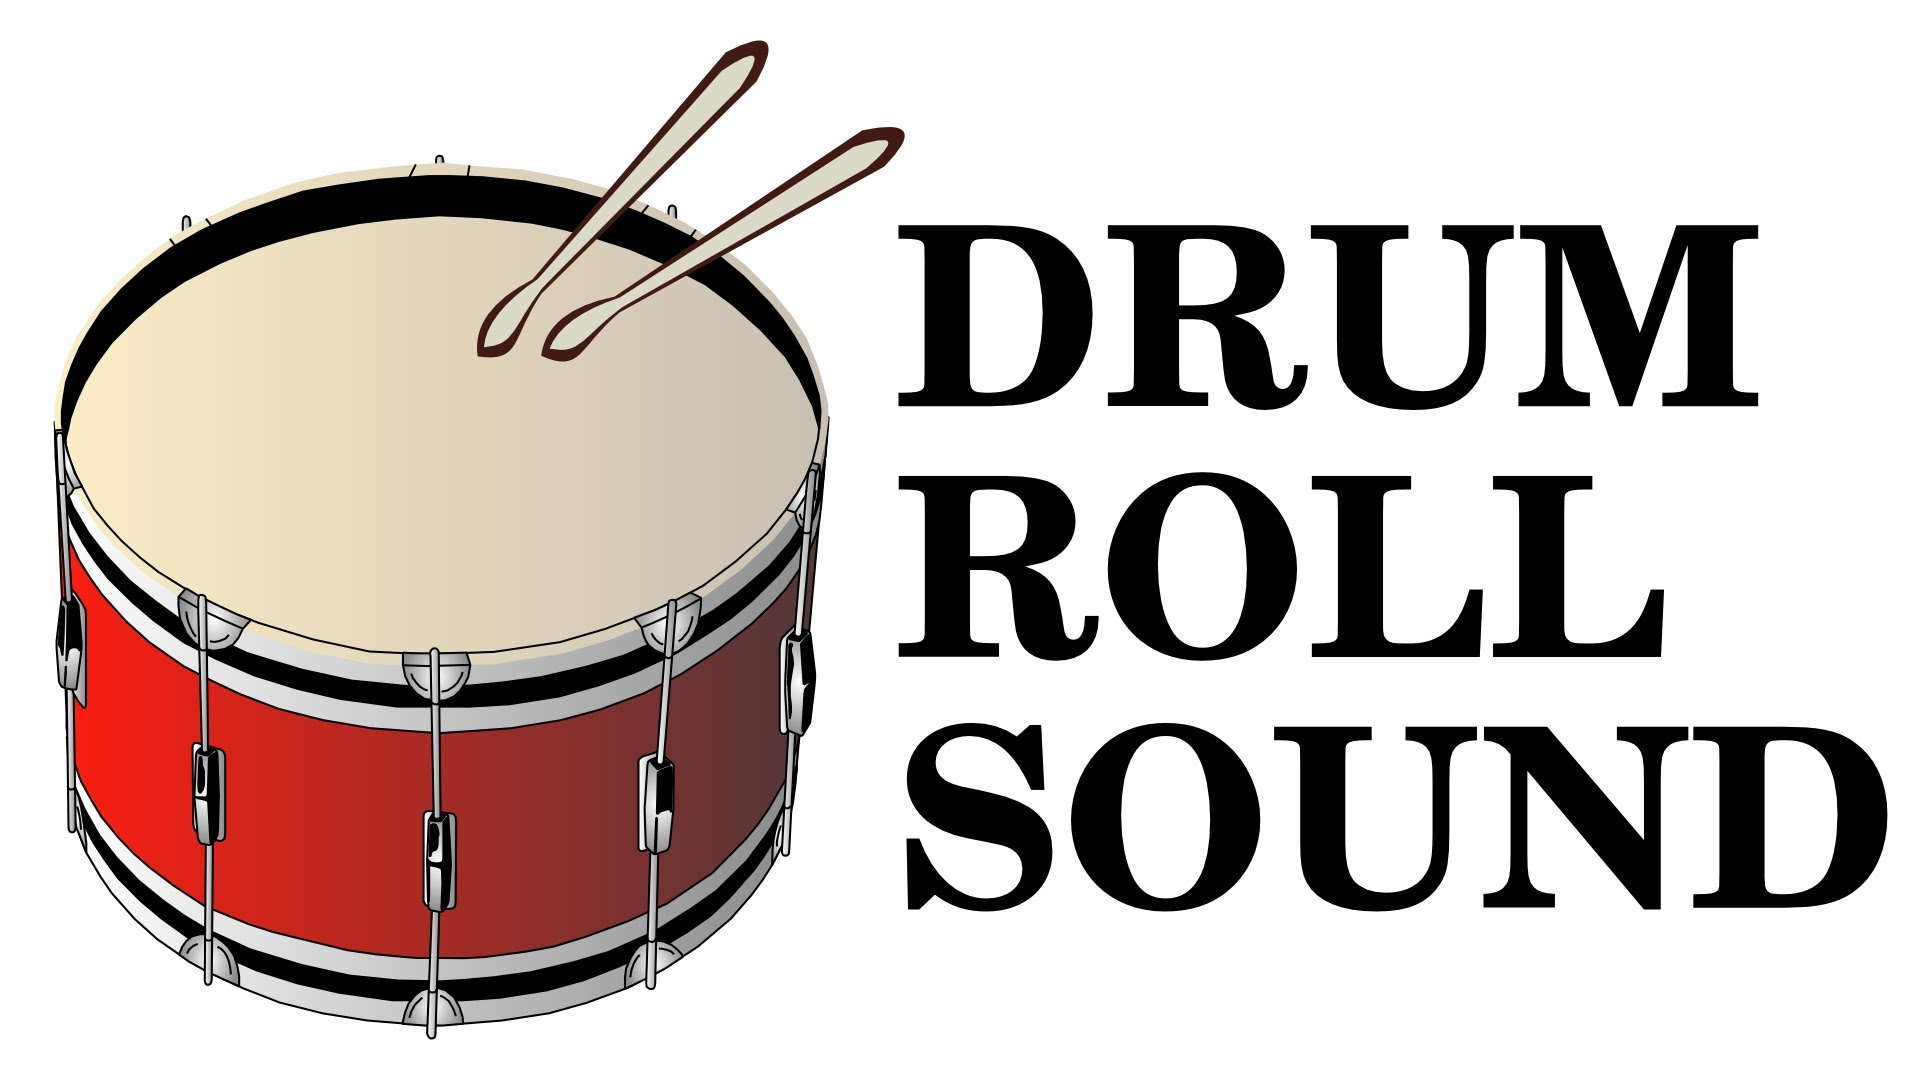 Drum Roll Sound Effect [High Quality, Free Download]